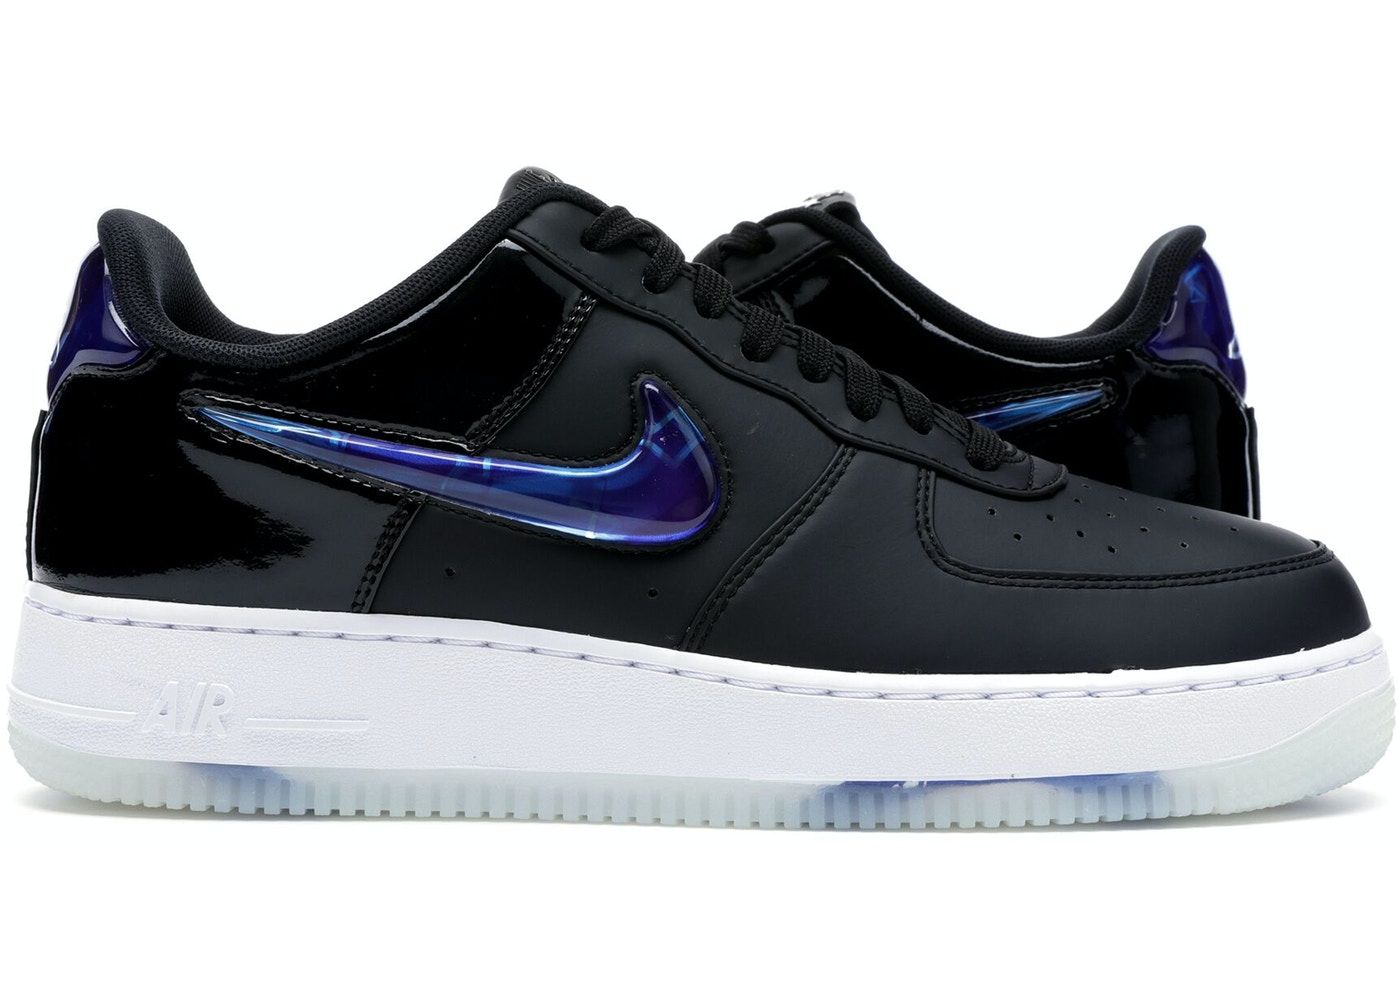 new styles 08d75 d3bba Air Force 1 Low Playstation (2018)